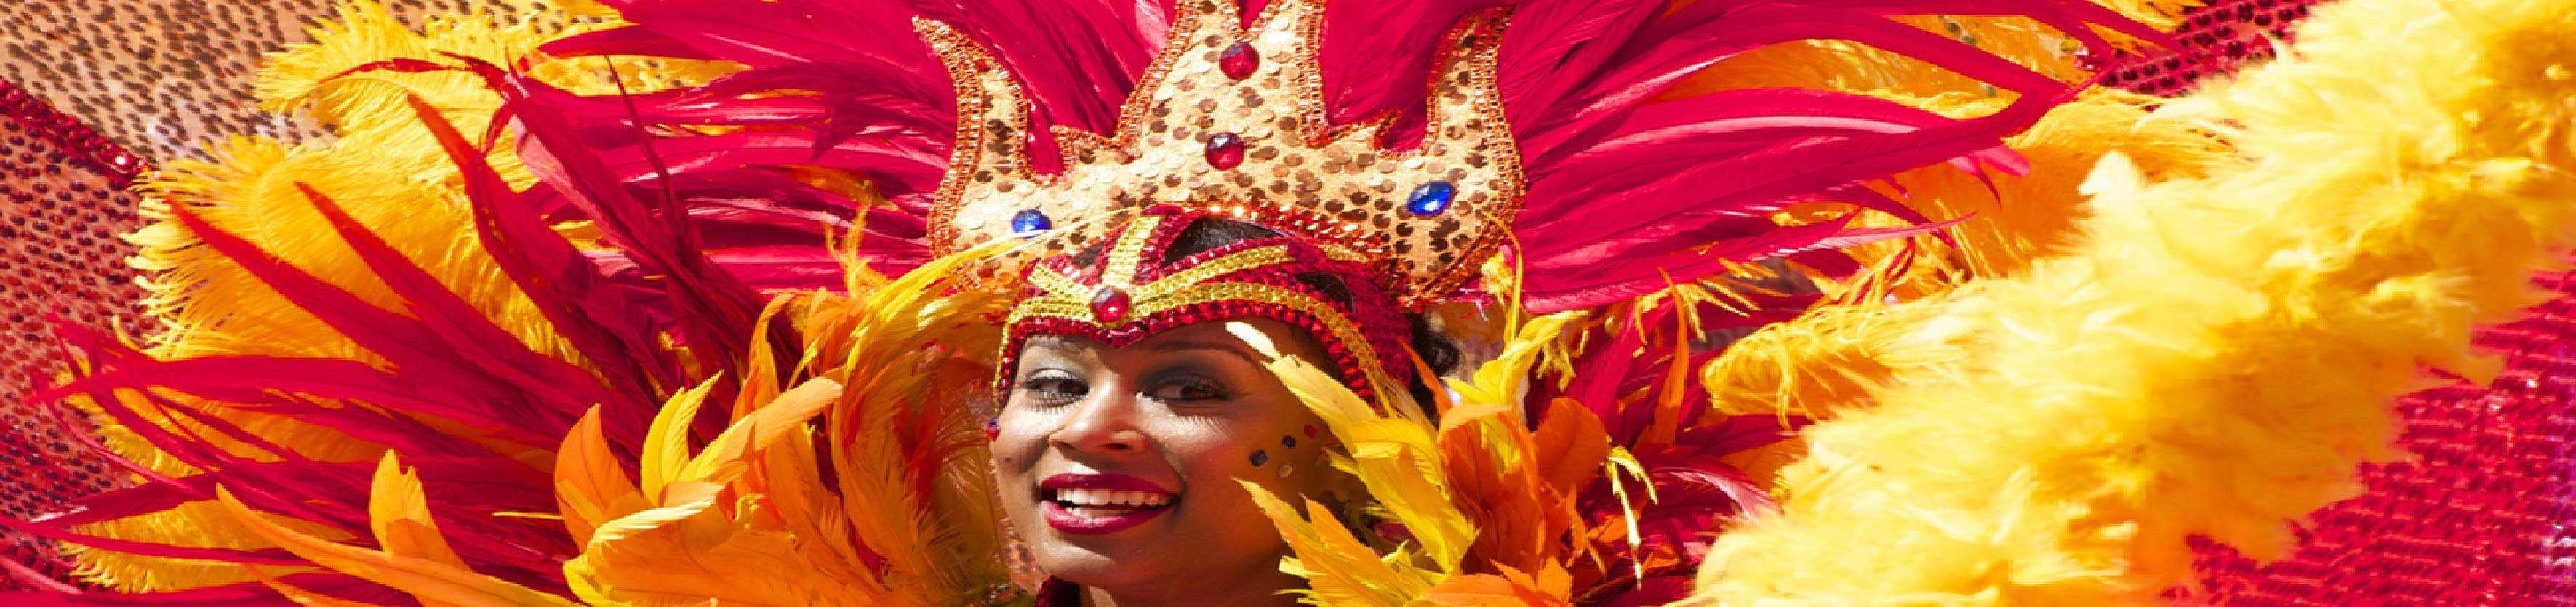 Best Carnivals Around the World: Learn about countries' cultures